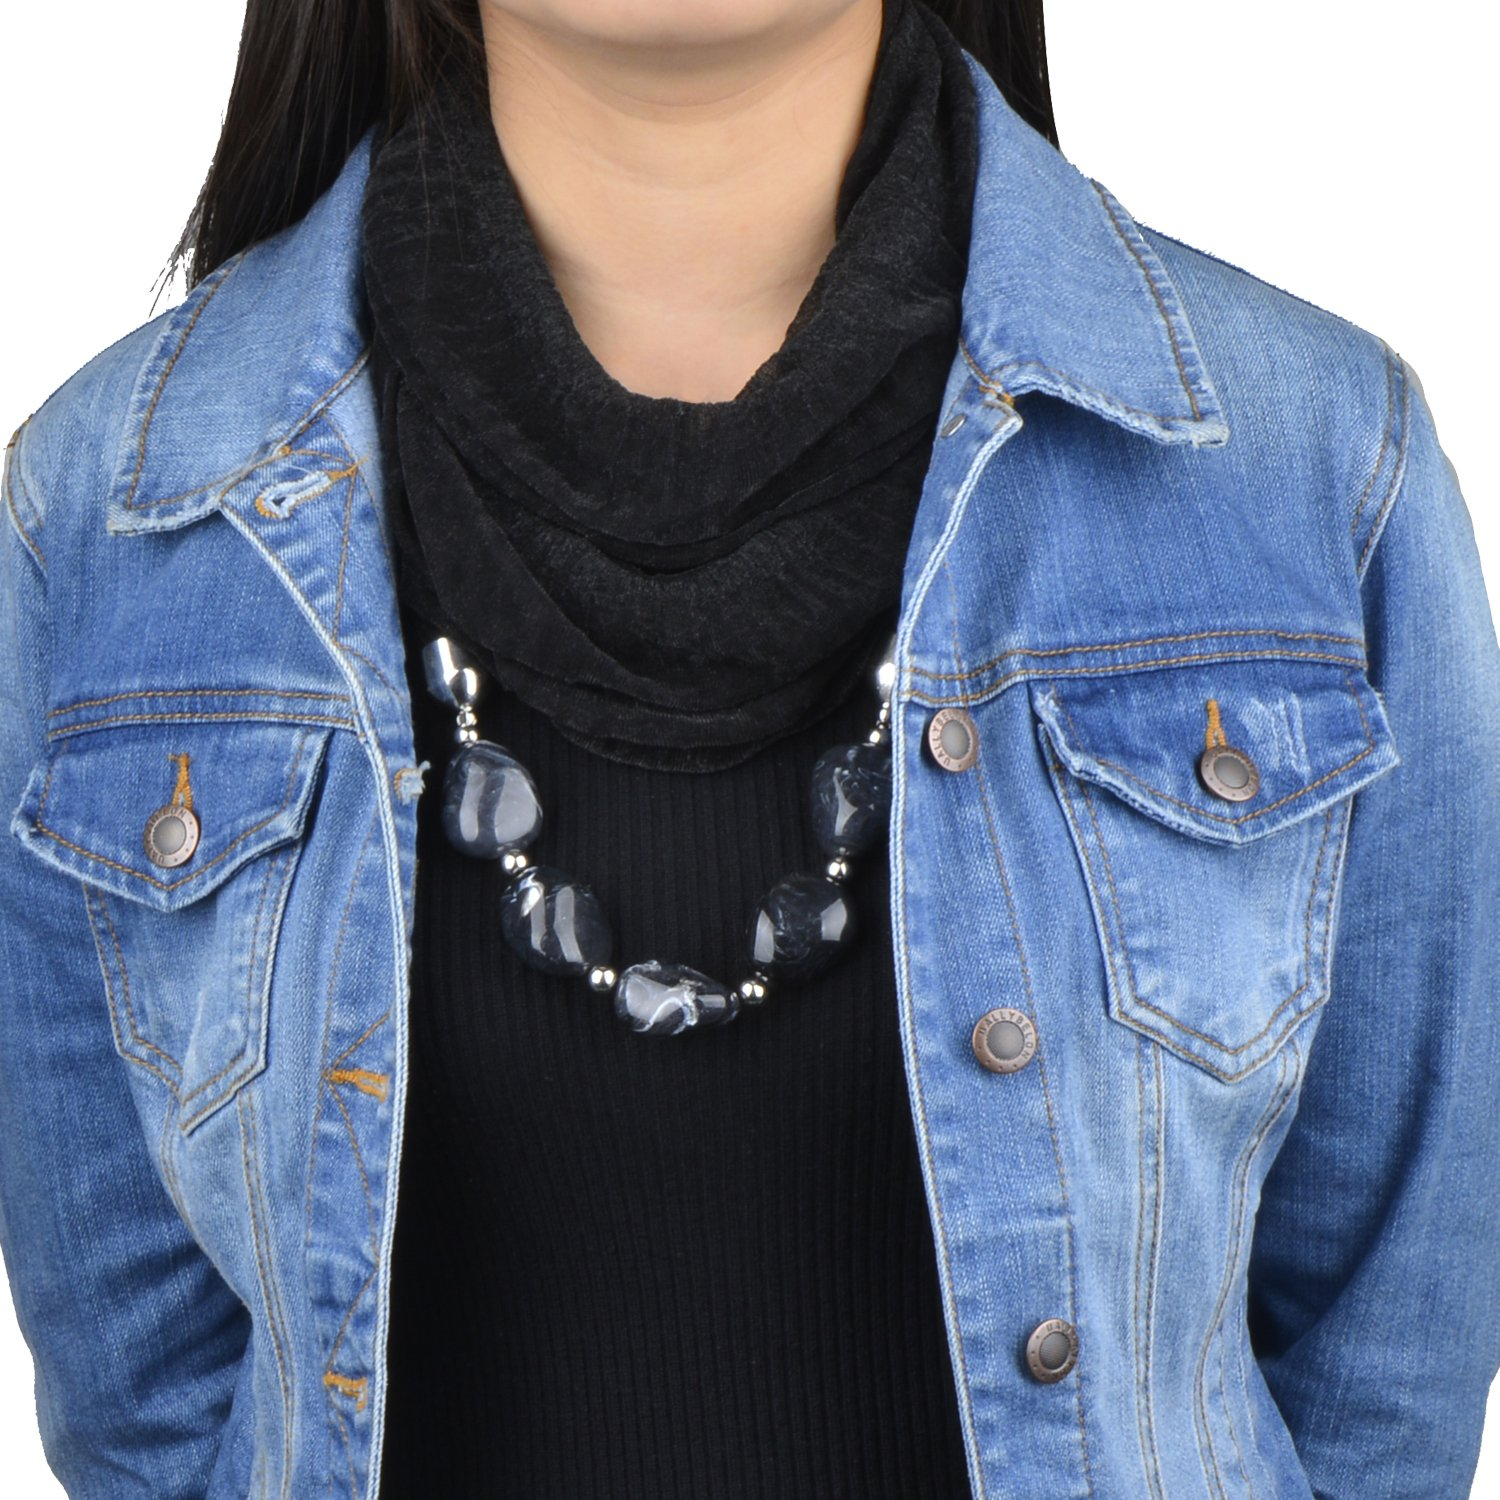 Handmade scarves are best gift ideas for women